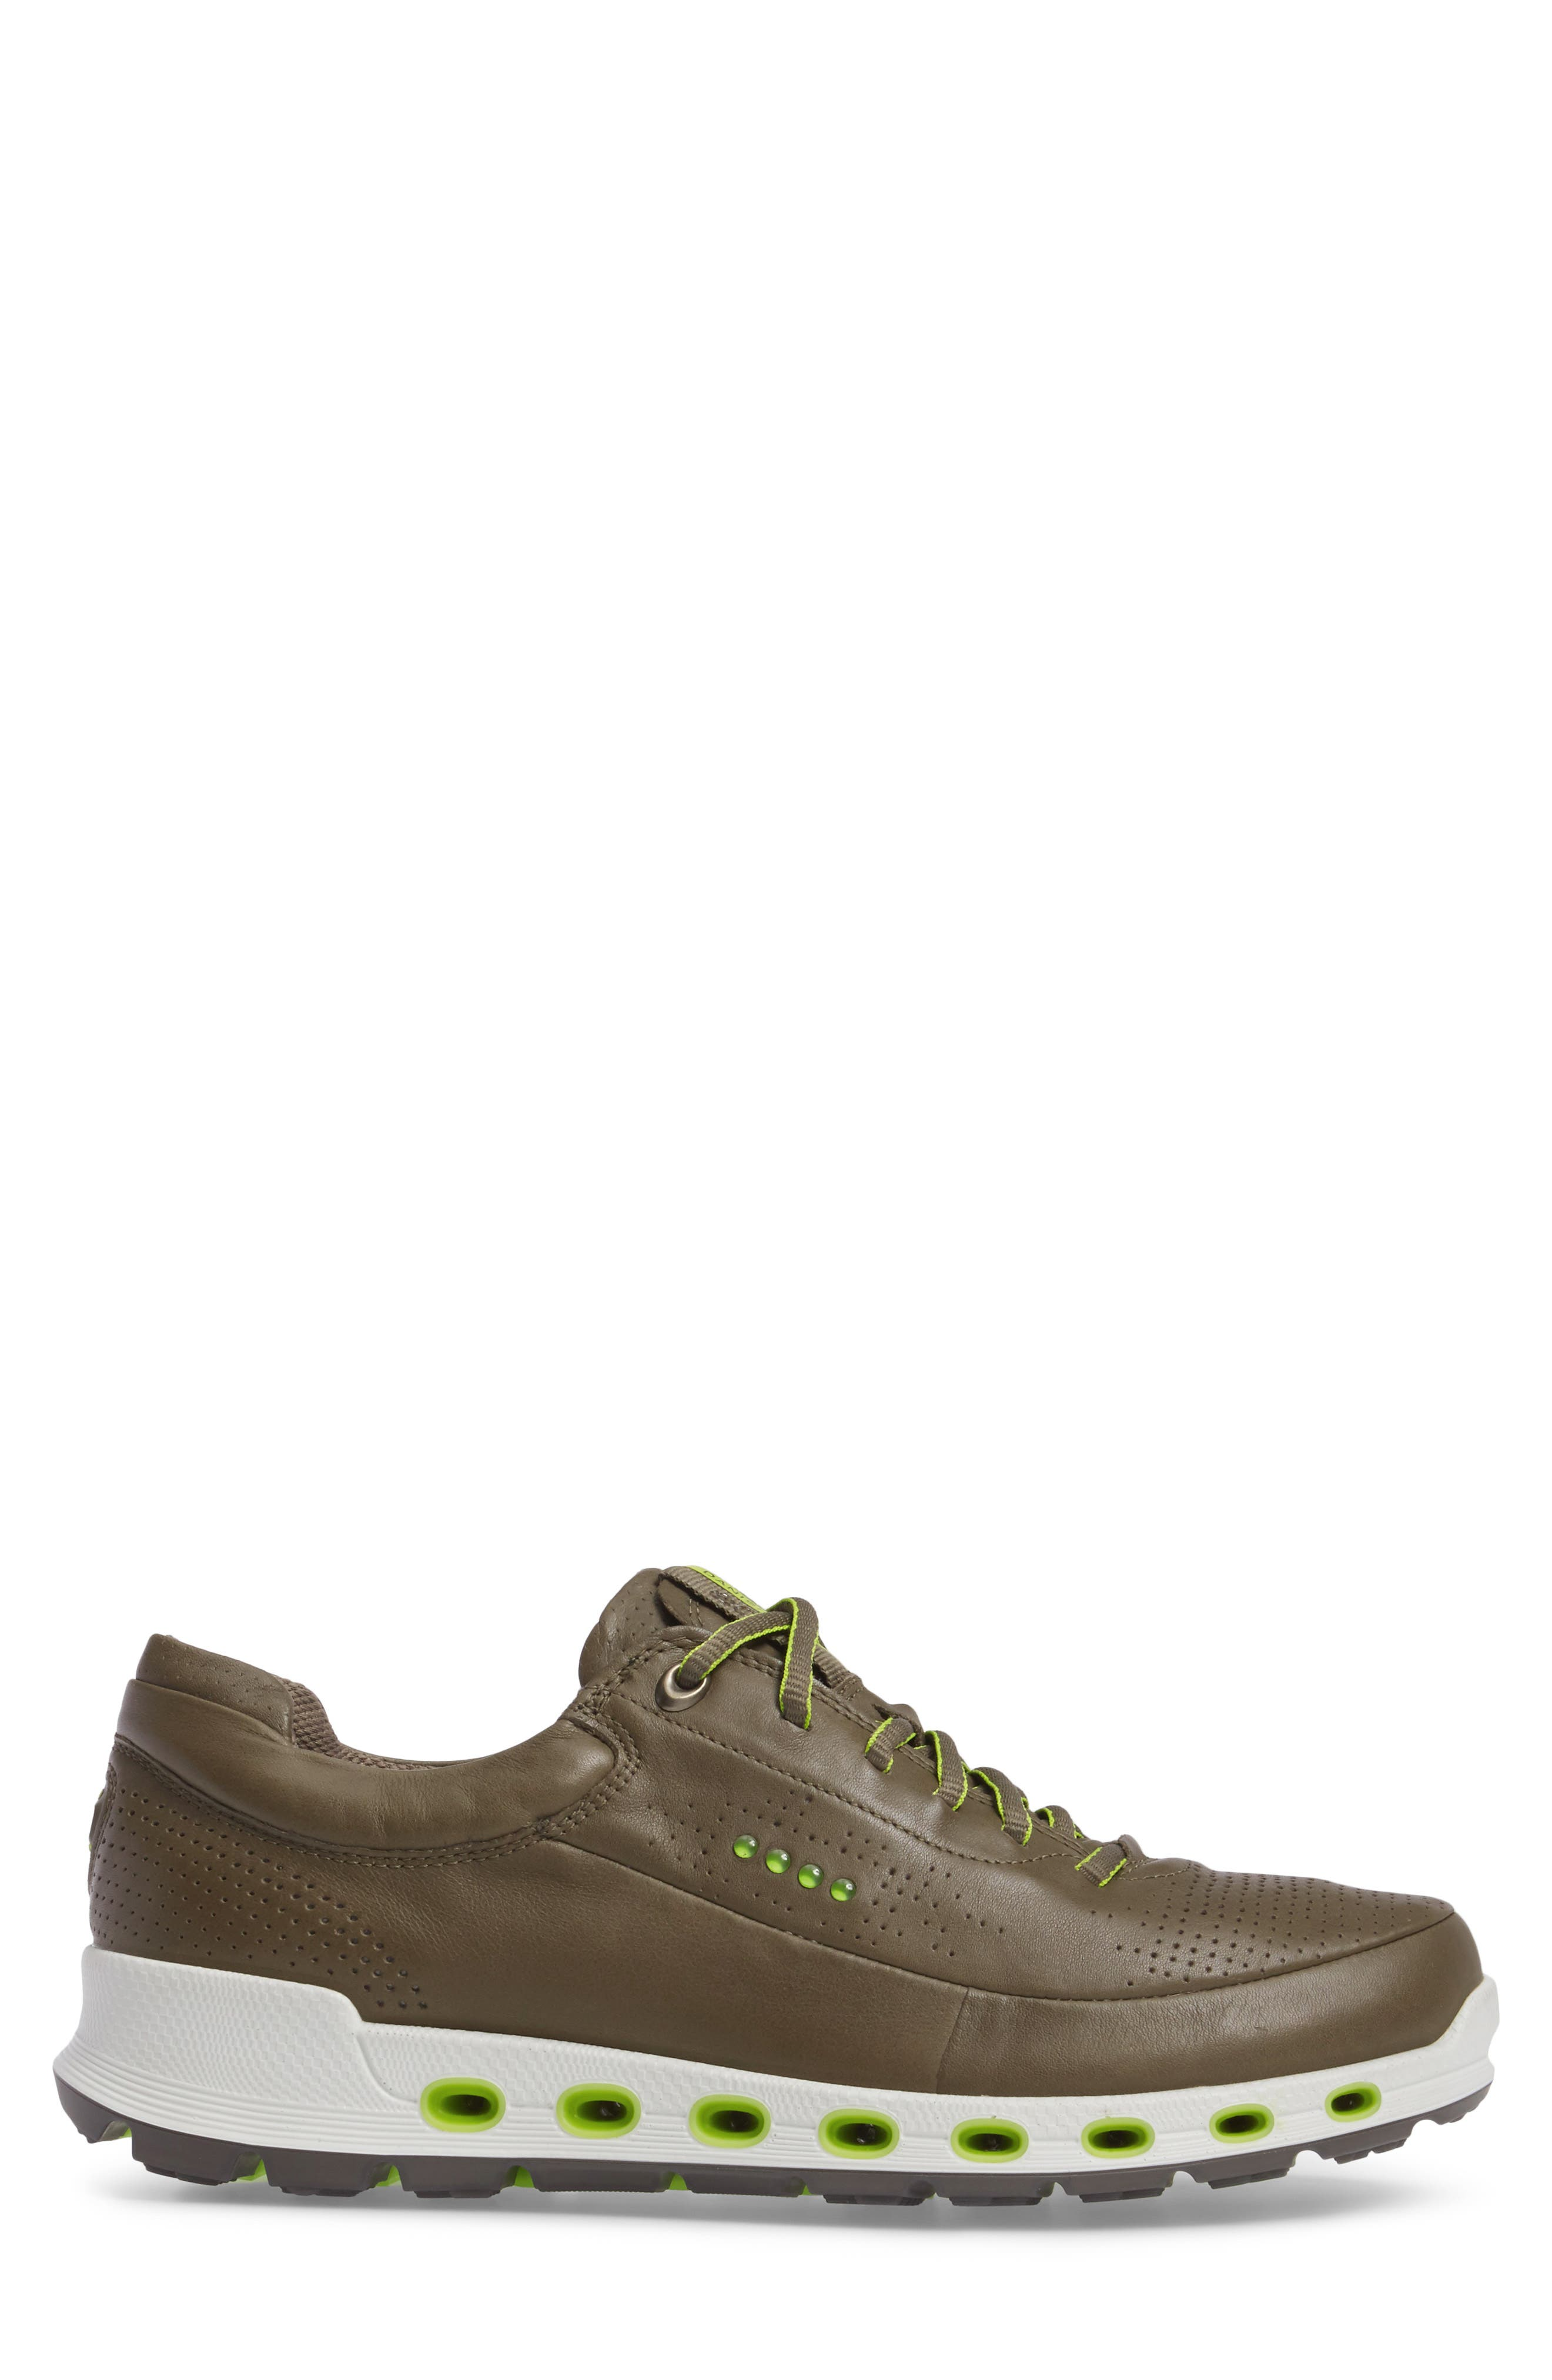 Cool 2.0 Leather GTX Sneaker,                             Alternate thumbnail 3, color,                             Tarmac Leather